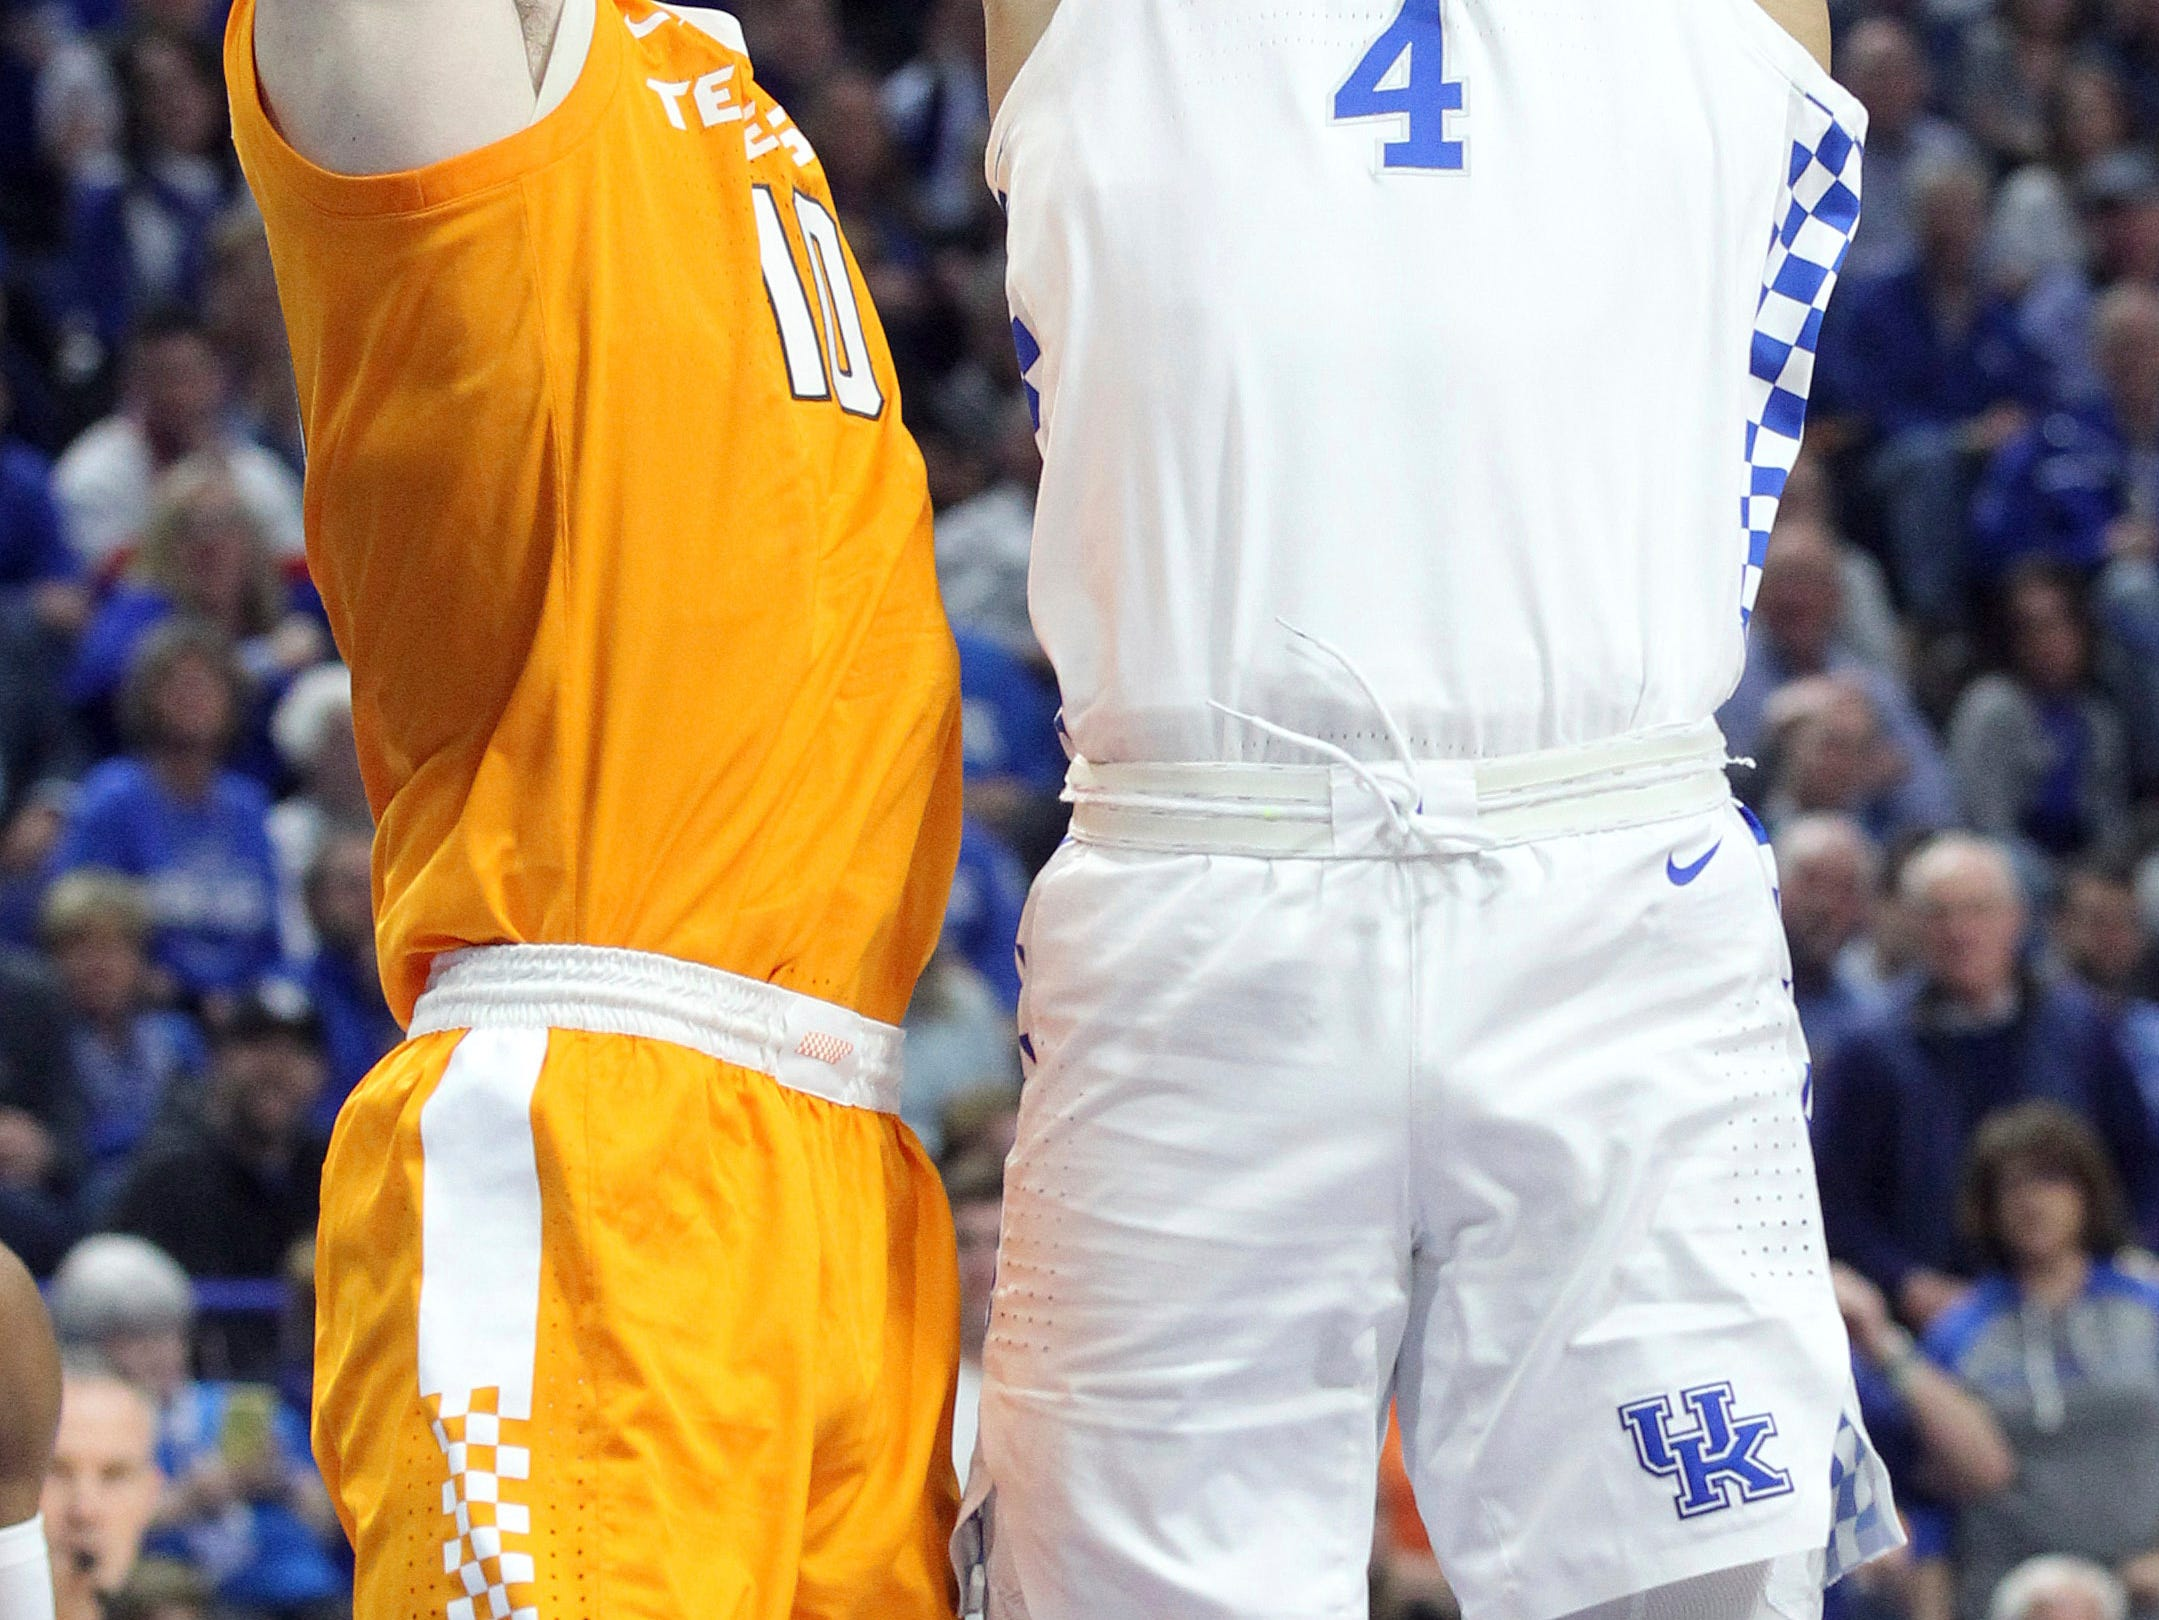 Kentucky's Nick Richards (4) shoots while defended by Tennessee's John Fulkerson (10) during the first half of an NCAA college basketball game in Lexington, Ky., Saturday, Feb. 16, 2019. (AP Photo/James Crisp)